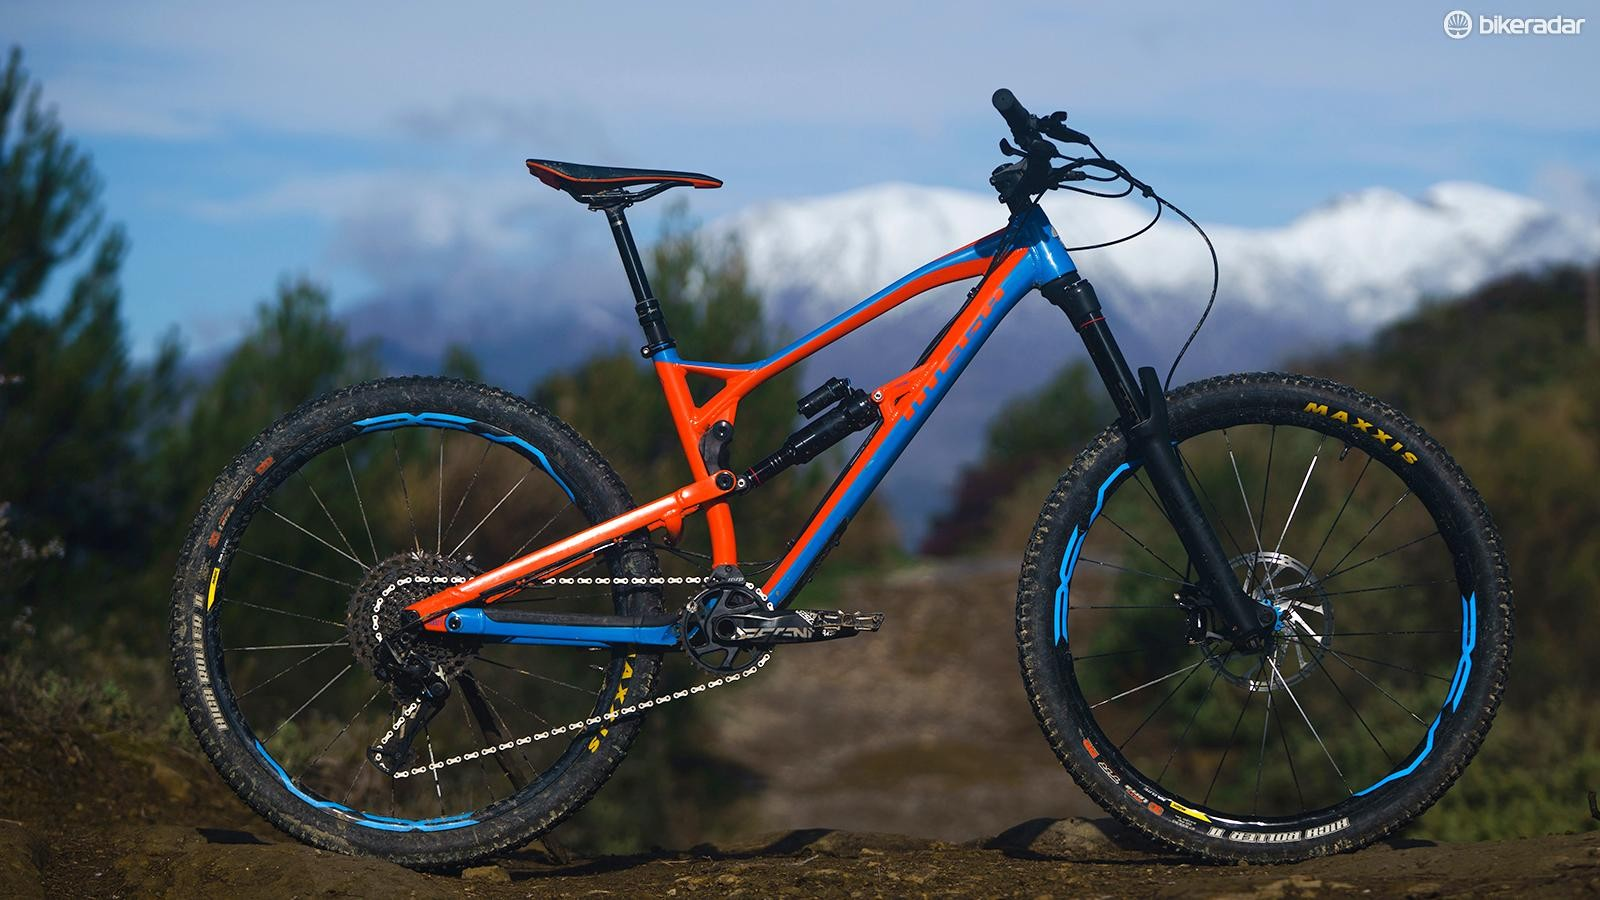 The Mega has been treated to some subtle but significant tweaks for 2018. The result is a seriously sorted bike that can be raced from the get-go without the need to change anything on it